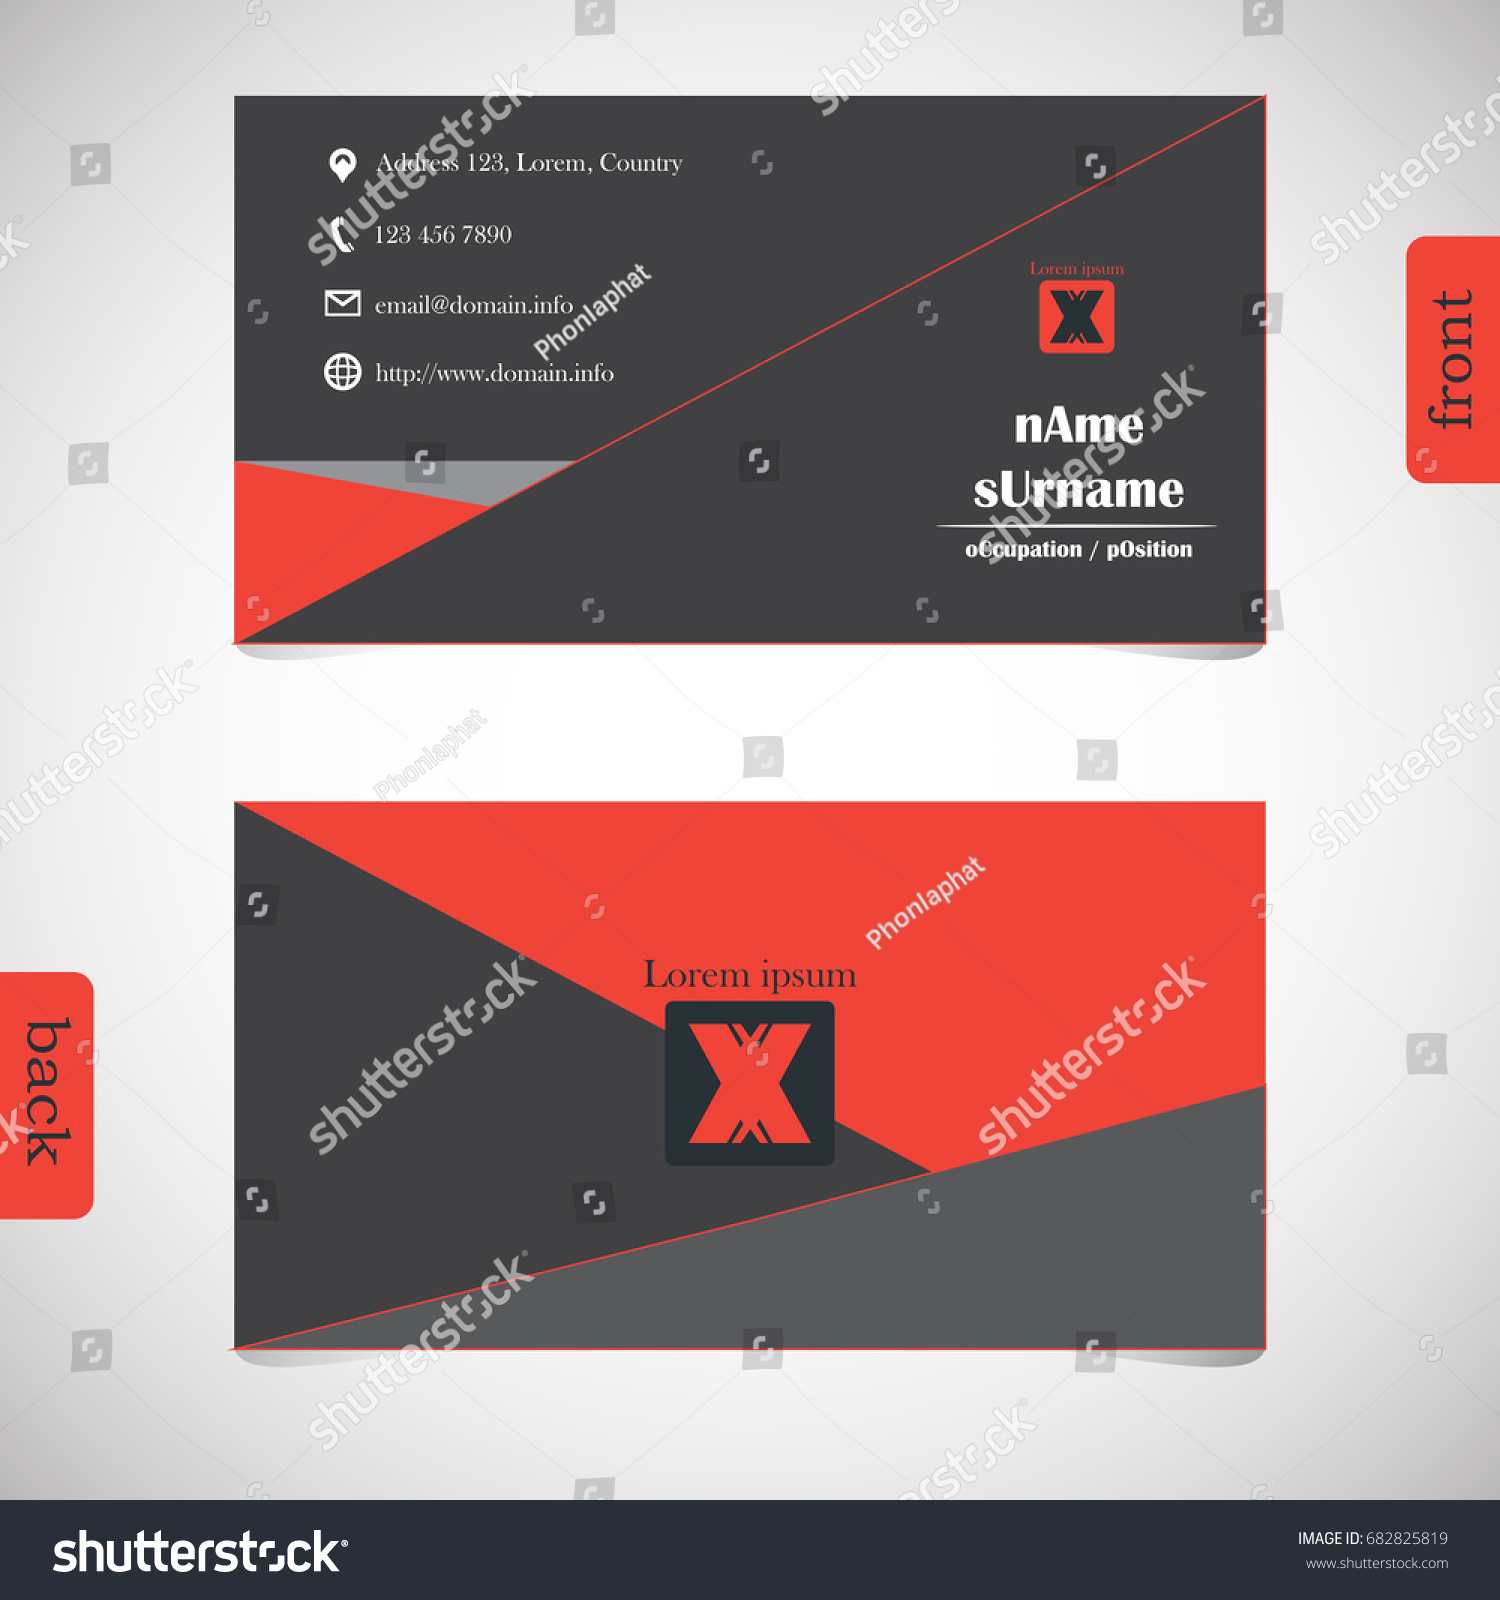 Vector design modern creative business card stock vector 682825819 vector design modern creative business card template show front and back of card concept magicingreecefo Images